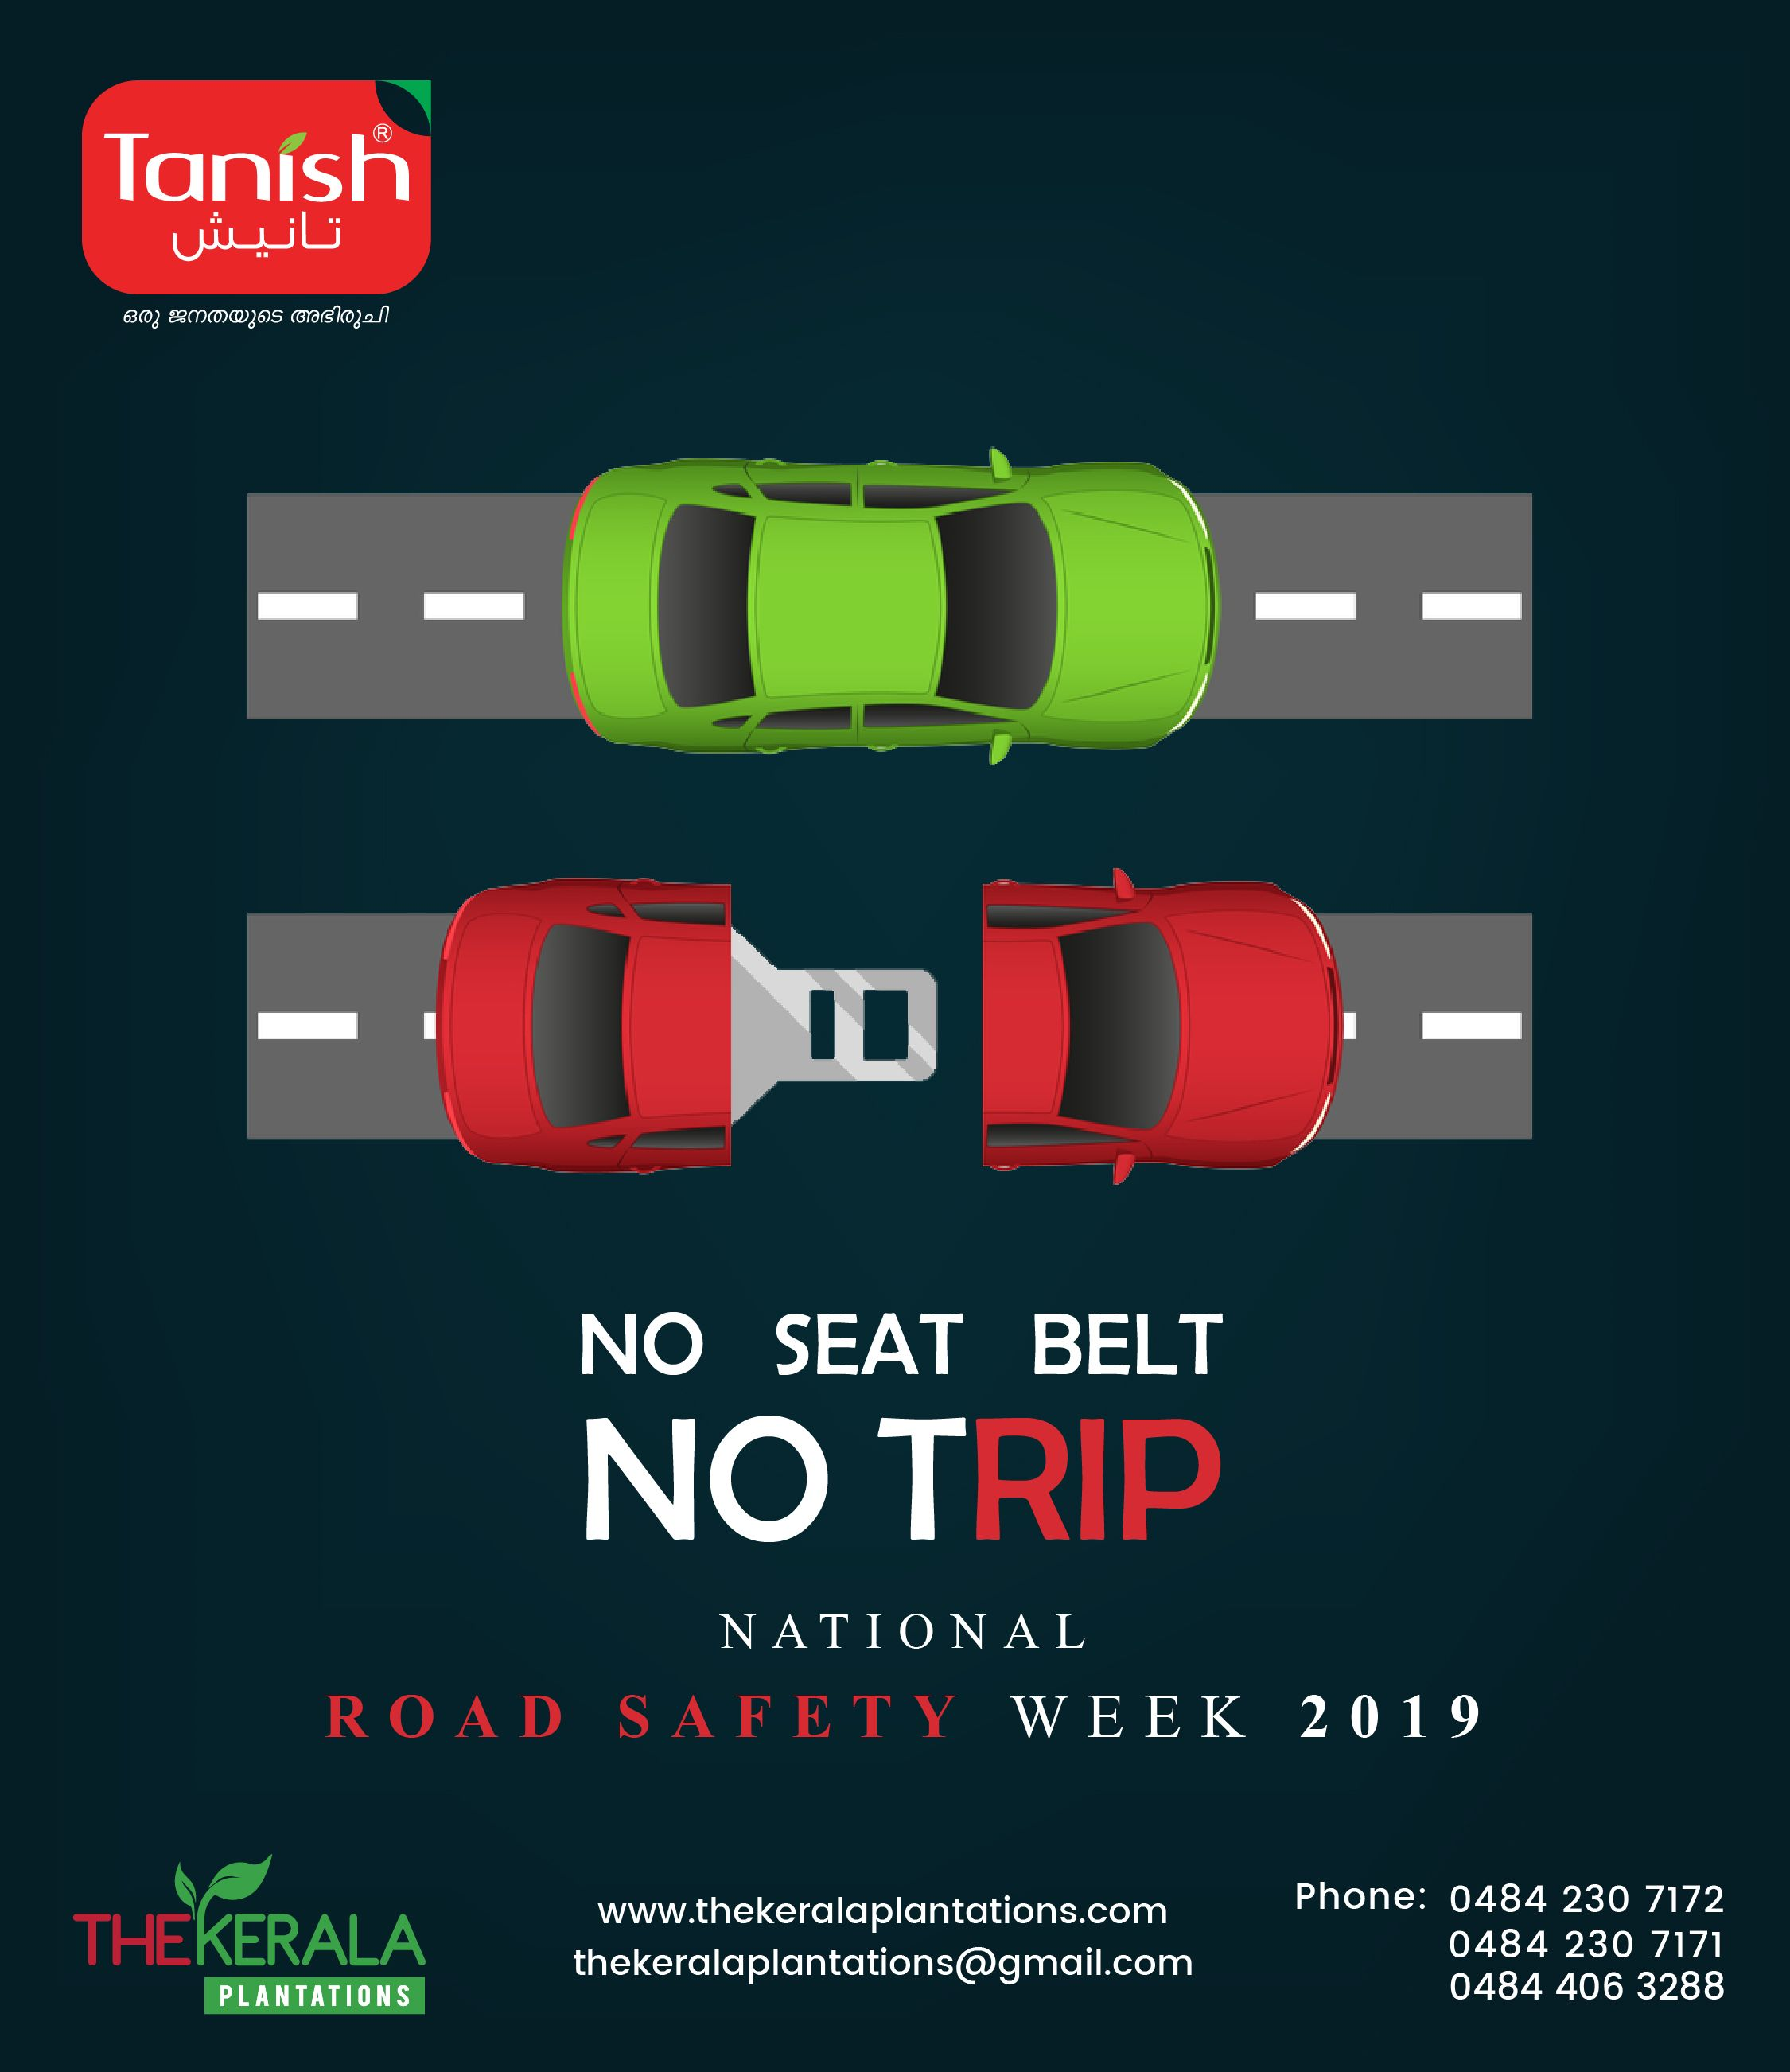 Drive safety rules are your best tools, National Road